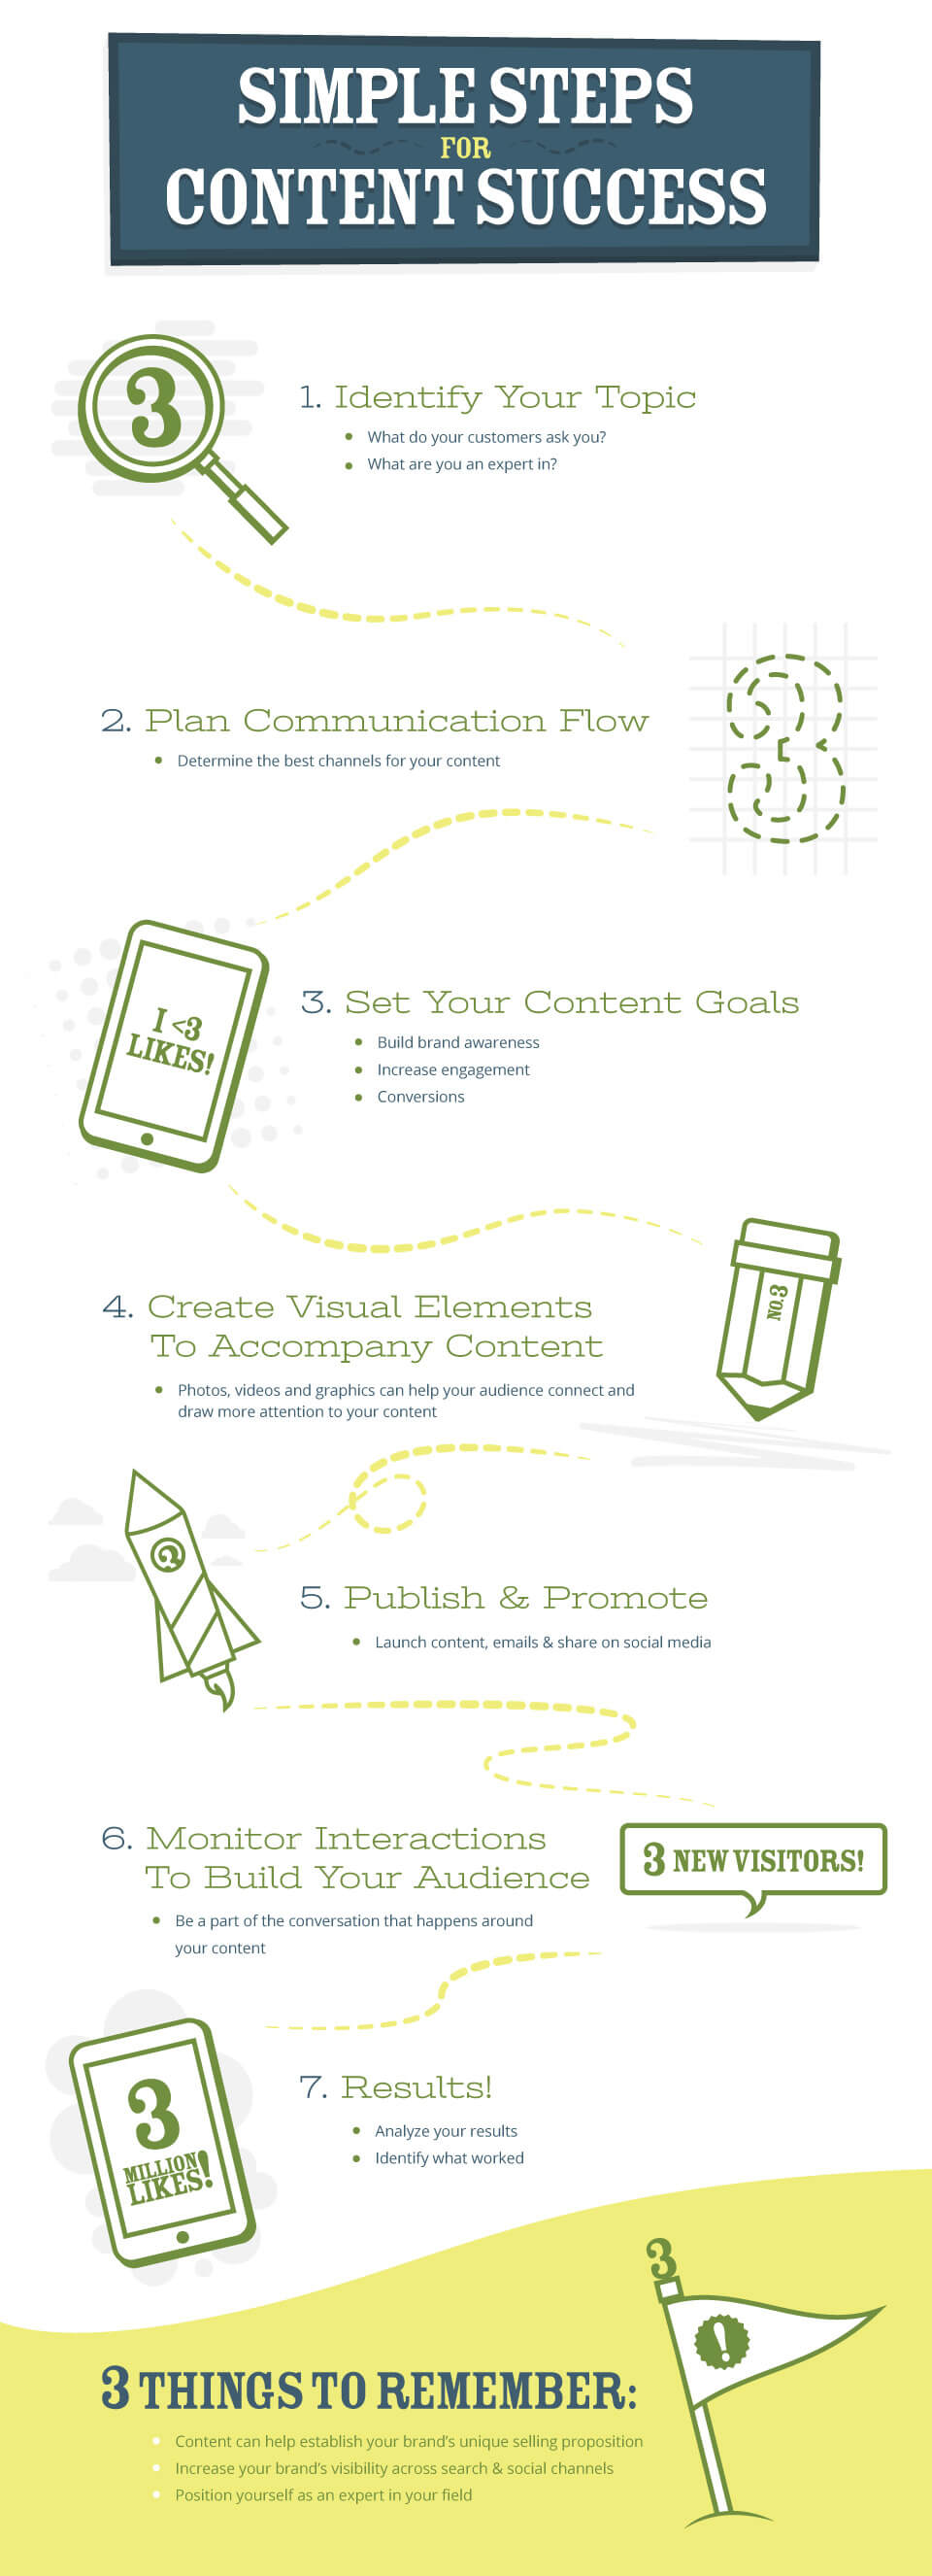 Simple Steps for Content Success